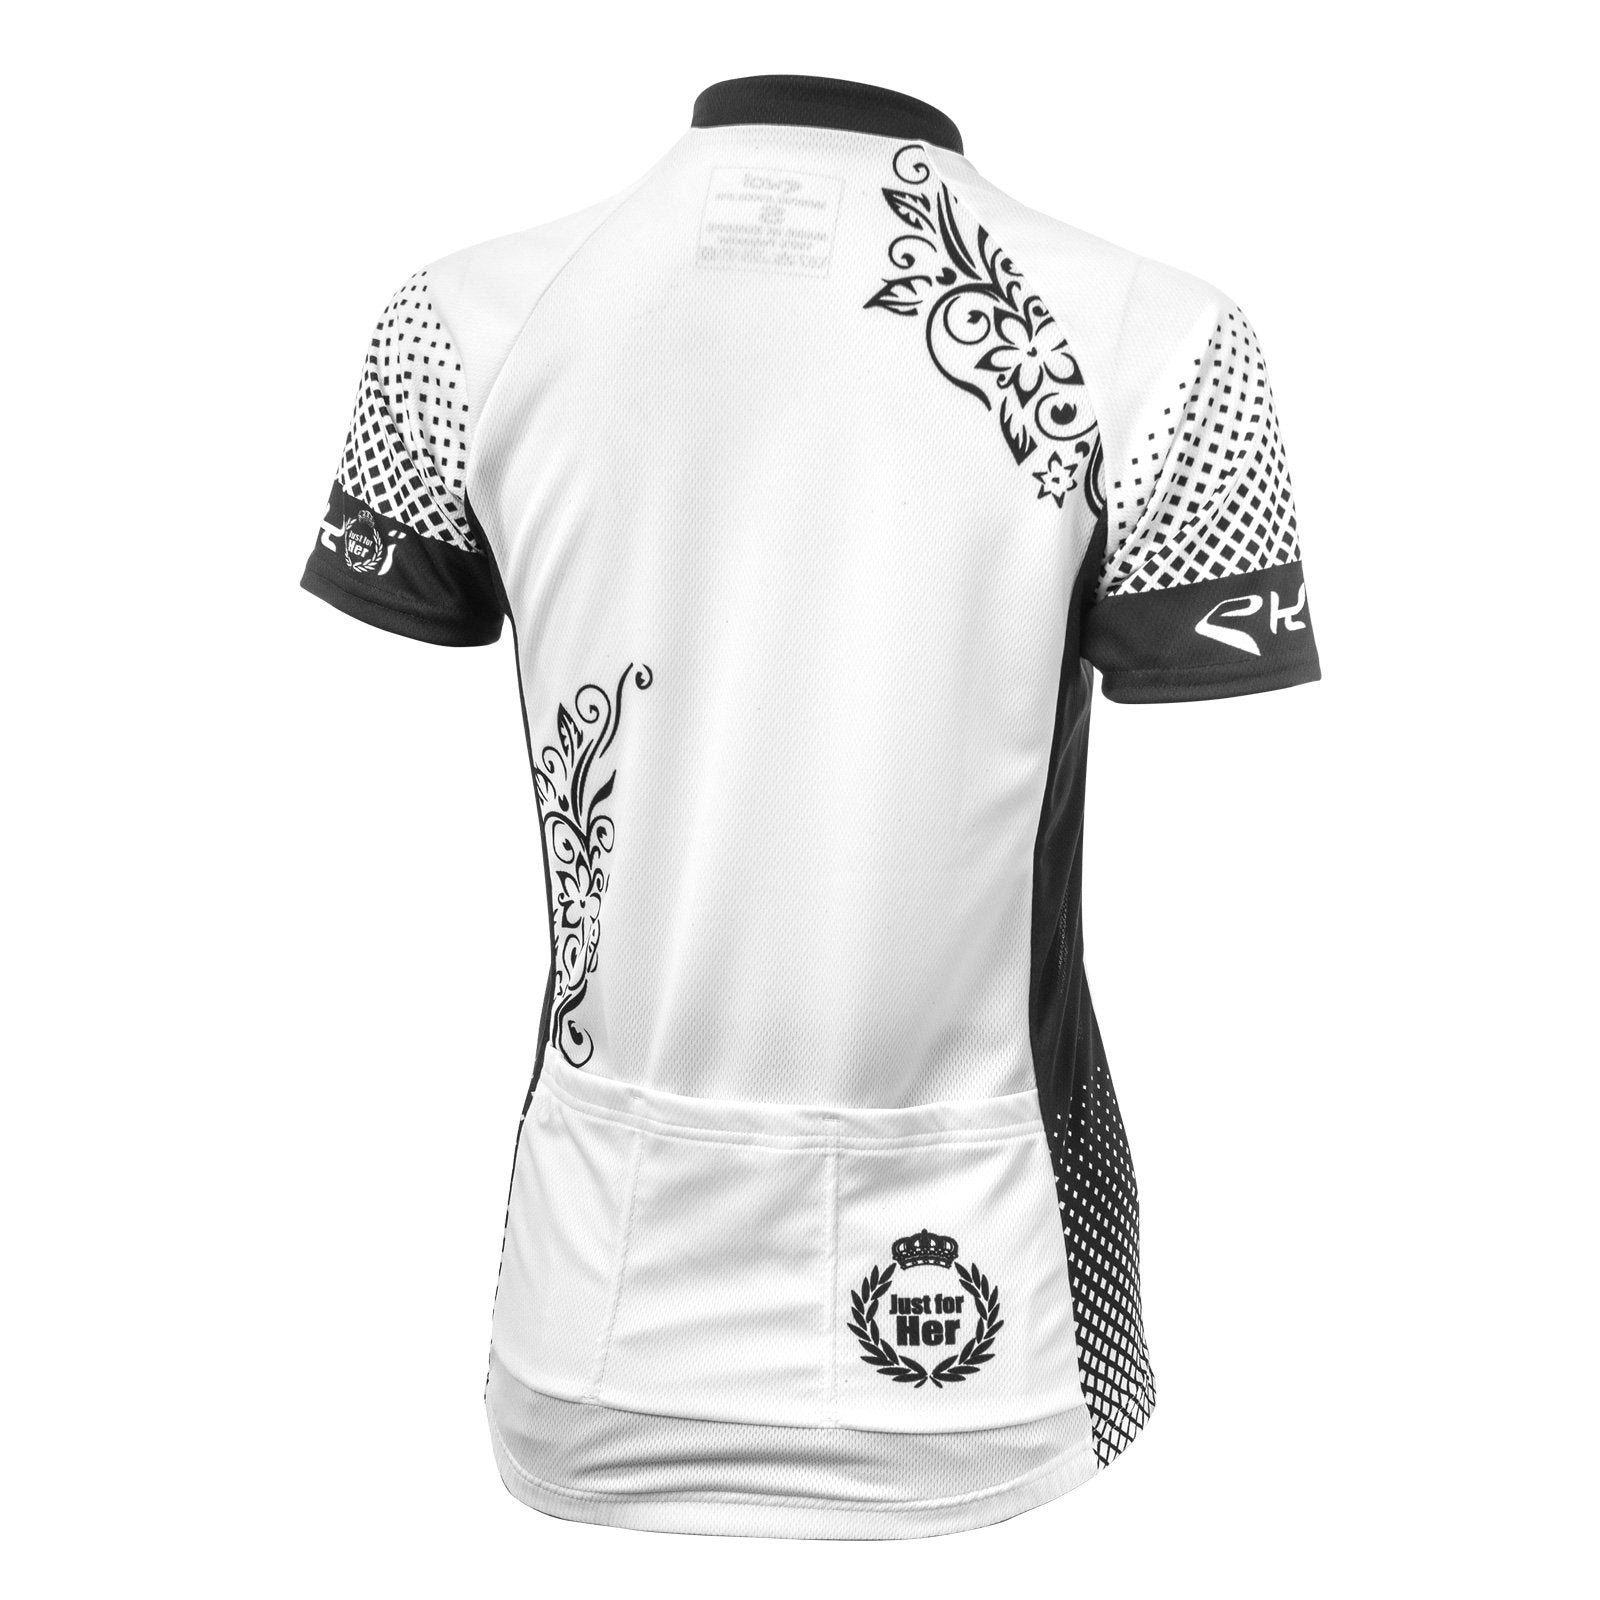 EKOI JUST FOR HER WOMEN'S JERSEY SHORT SLEEVE WHITE